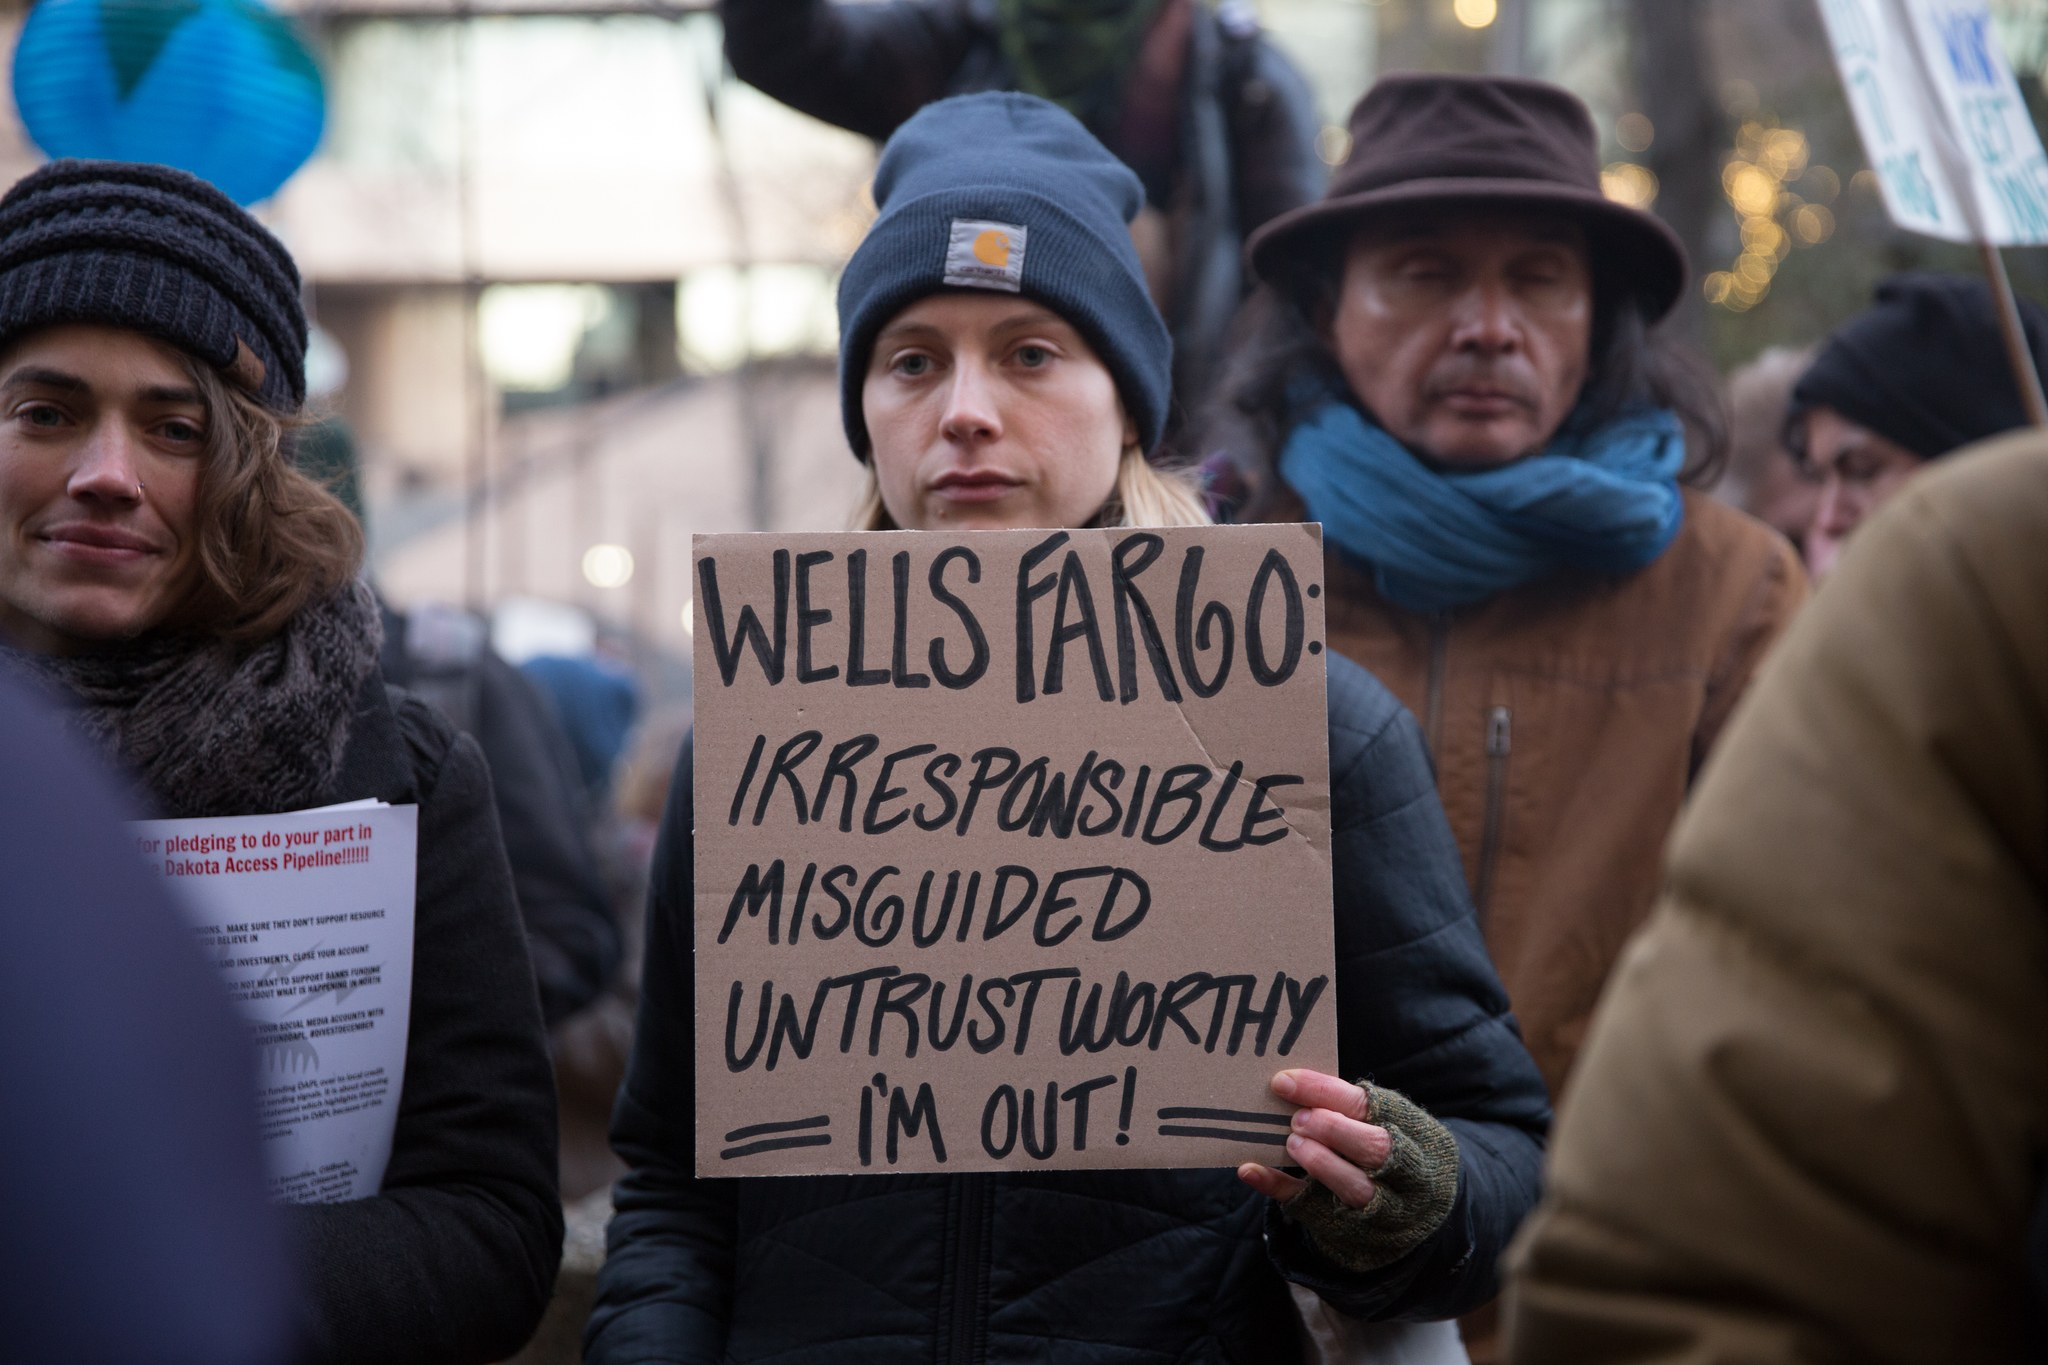 A protester outside the Wells Fargo building in downtown Seattle. Photography by Alex Garland